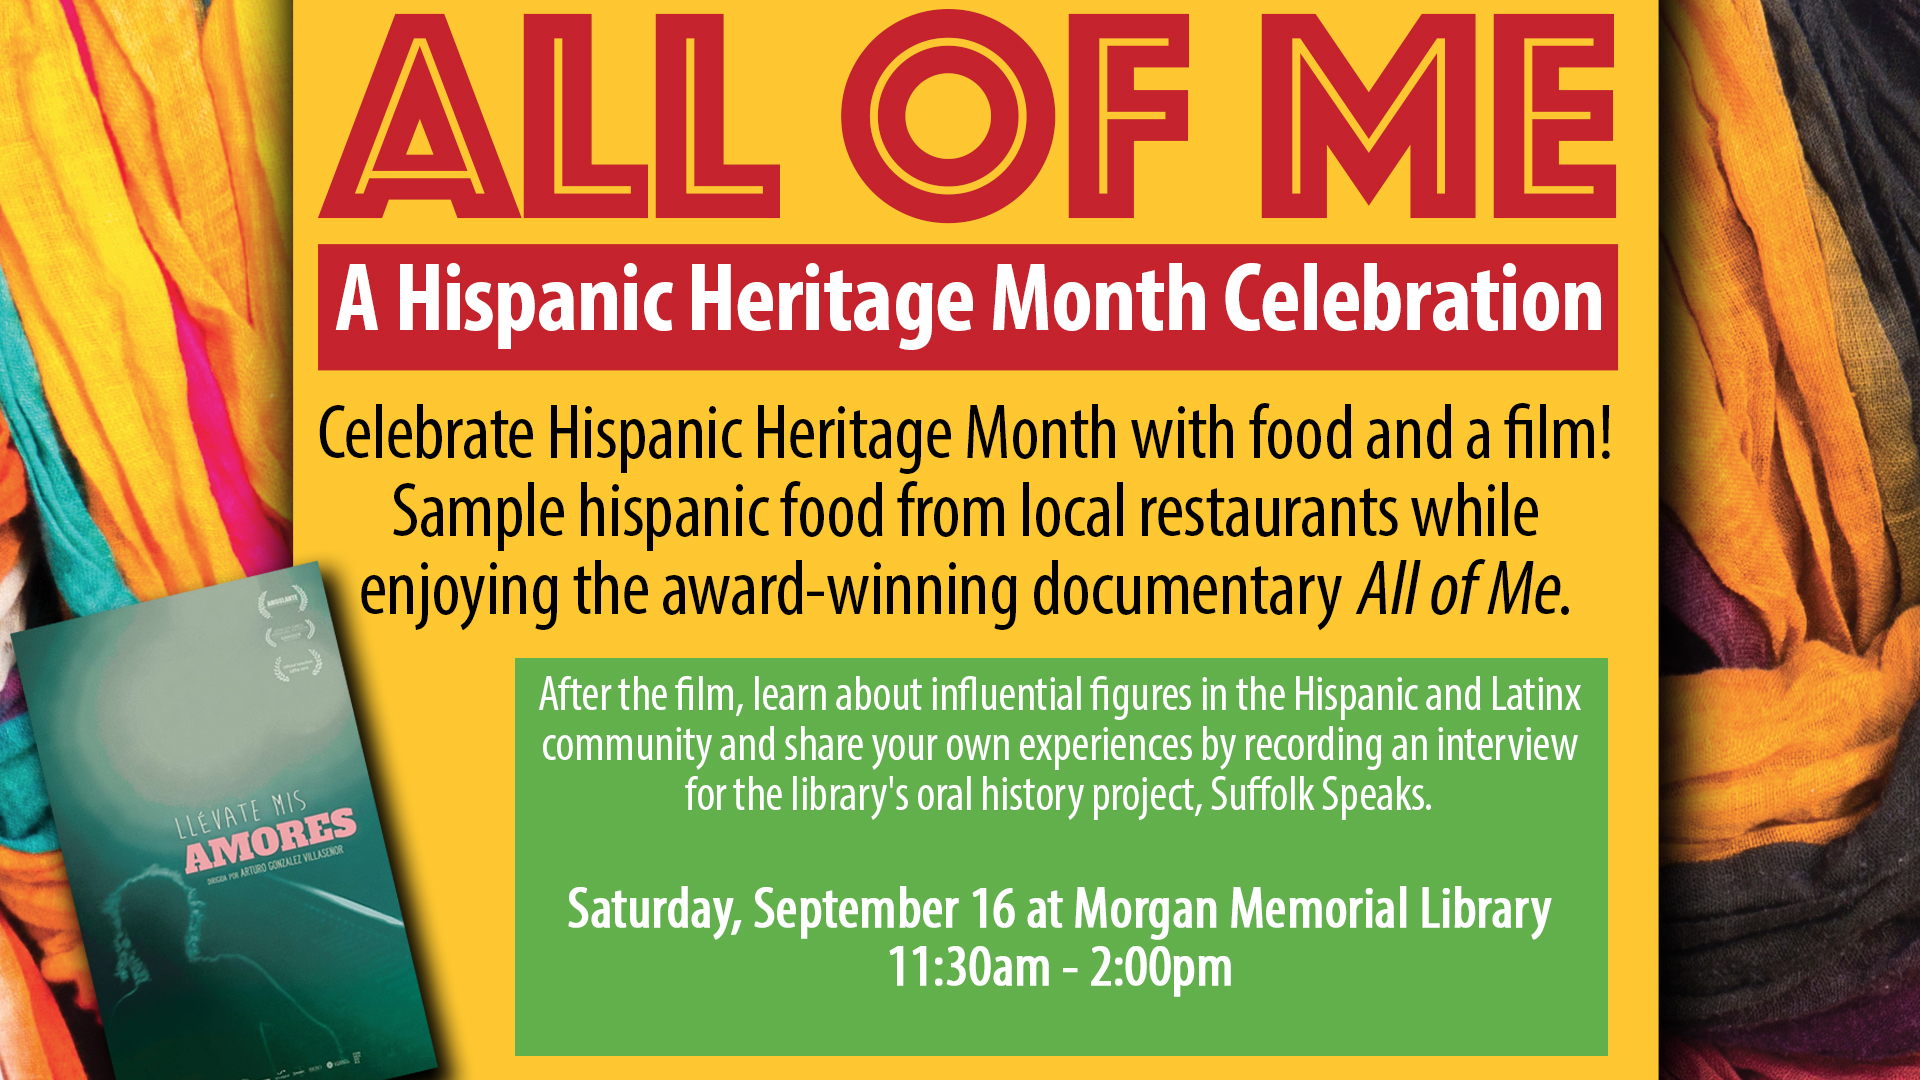 All of Me: A Hispanic Heritage Month Celebration